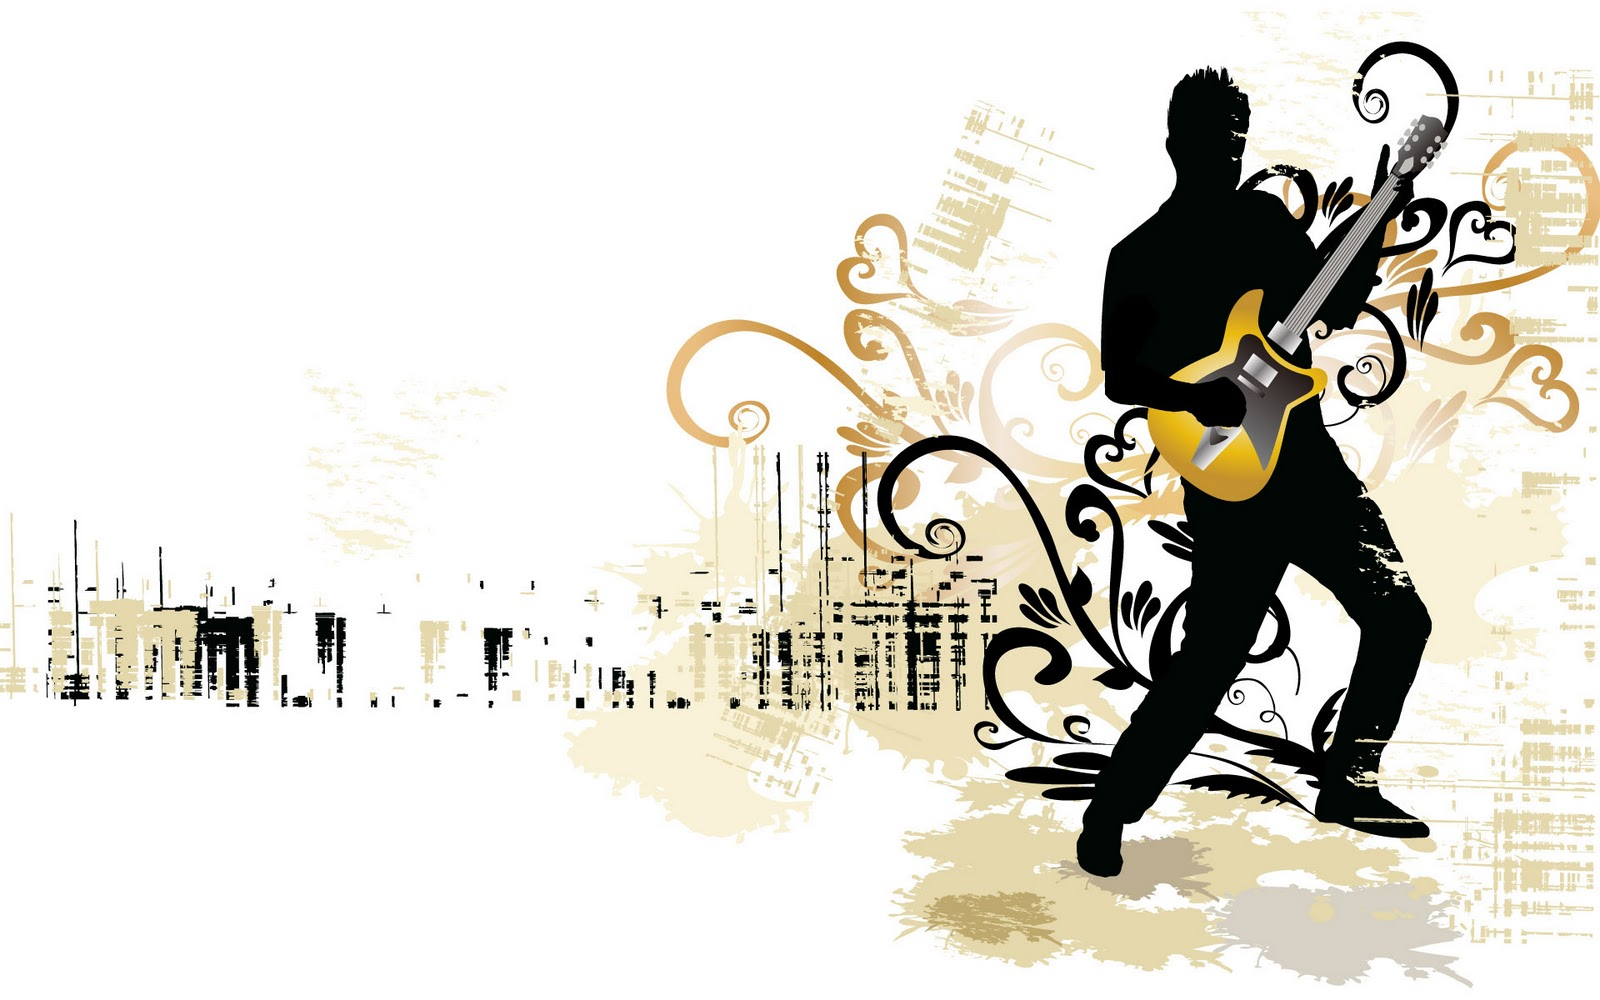 Graphic Design Music Wallpaper 7329 Hd Wallpapers in Creative Graphics 1600x1000